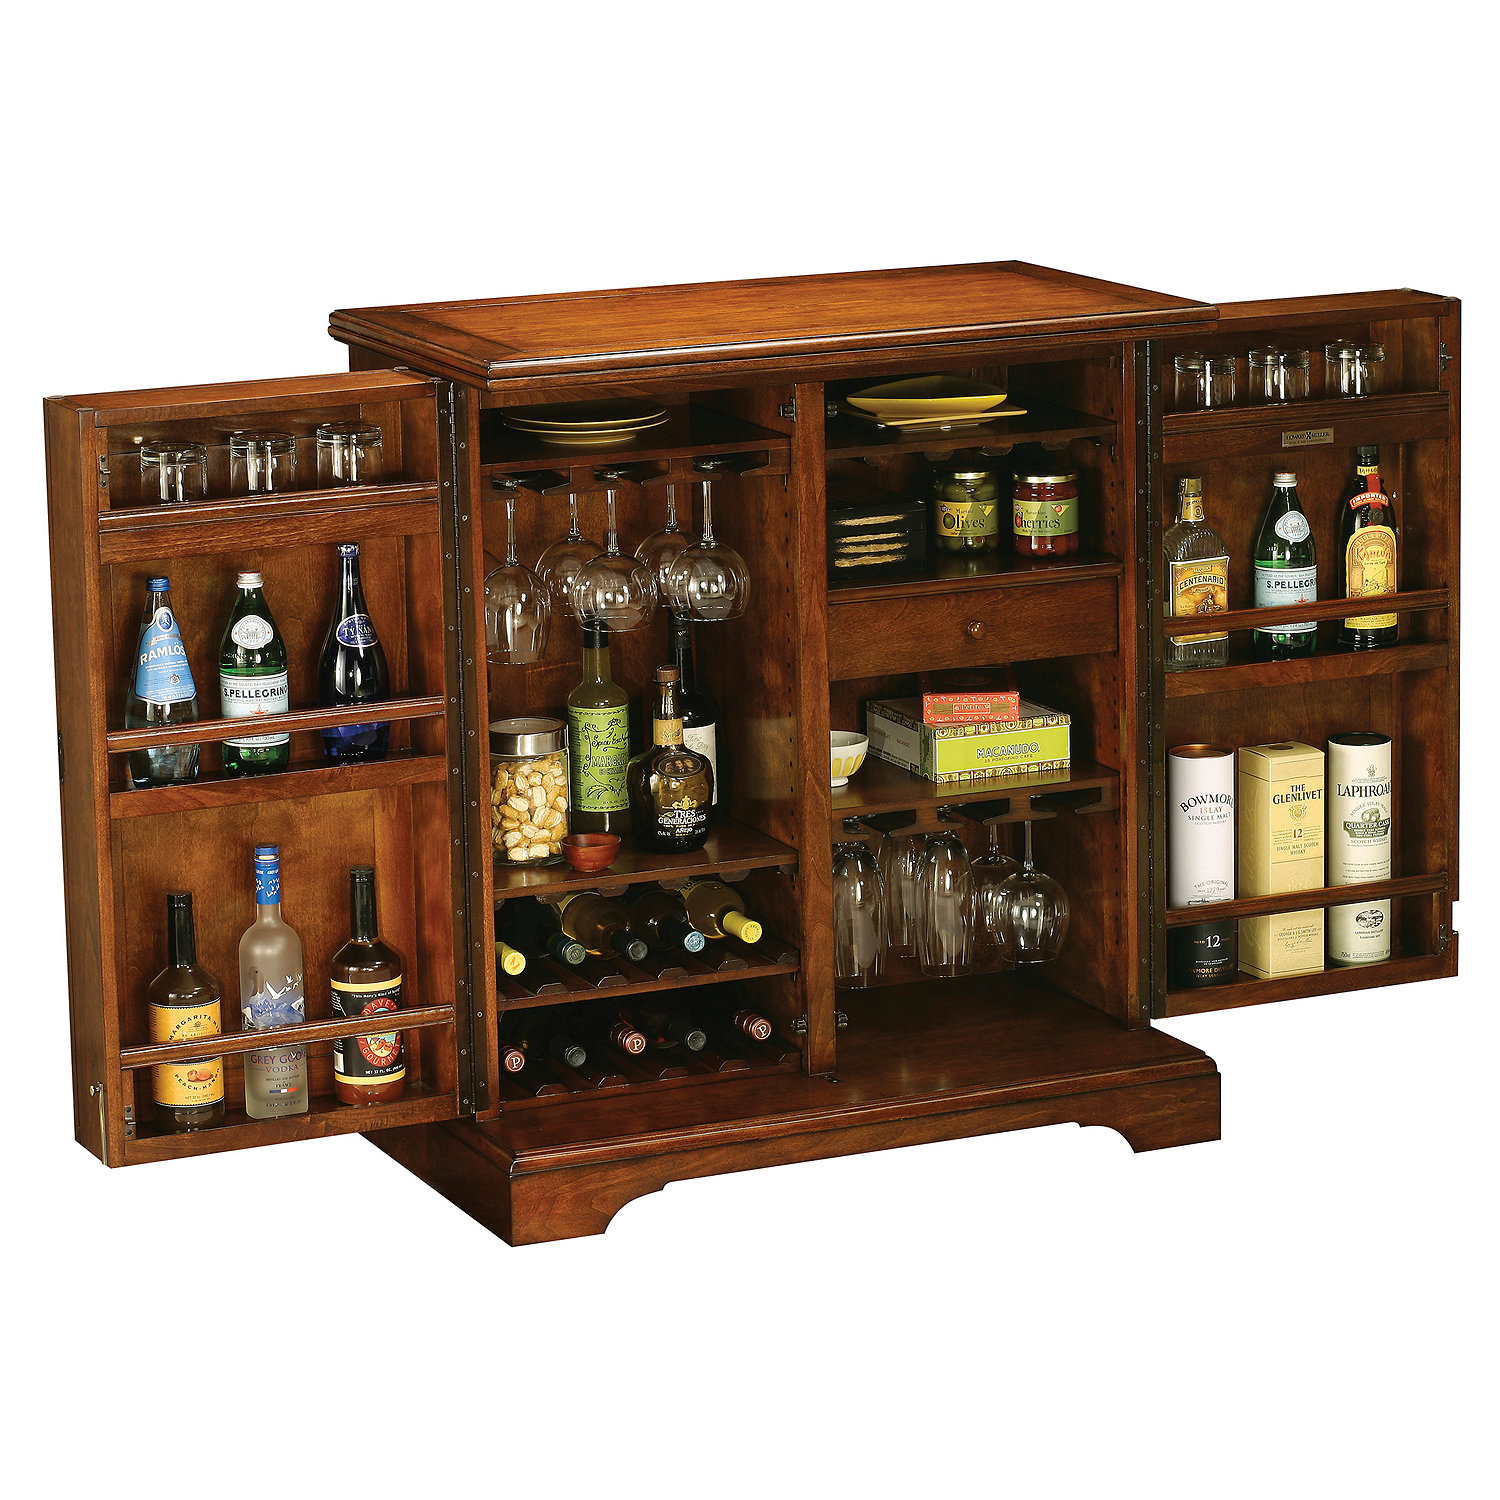 Best Home Bar Cabinet Plans - Caropinto